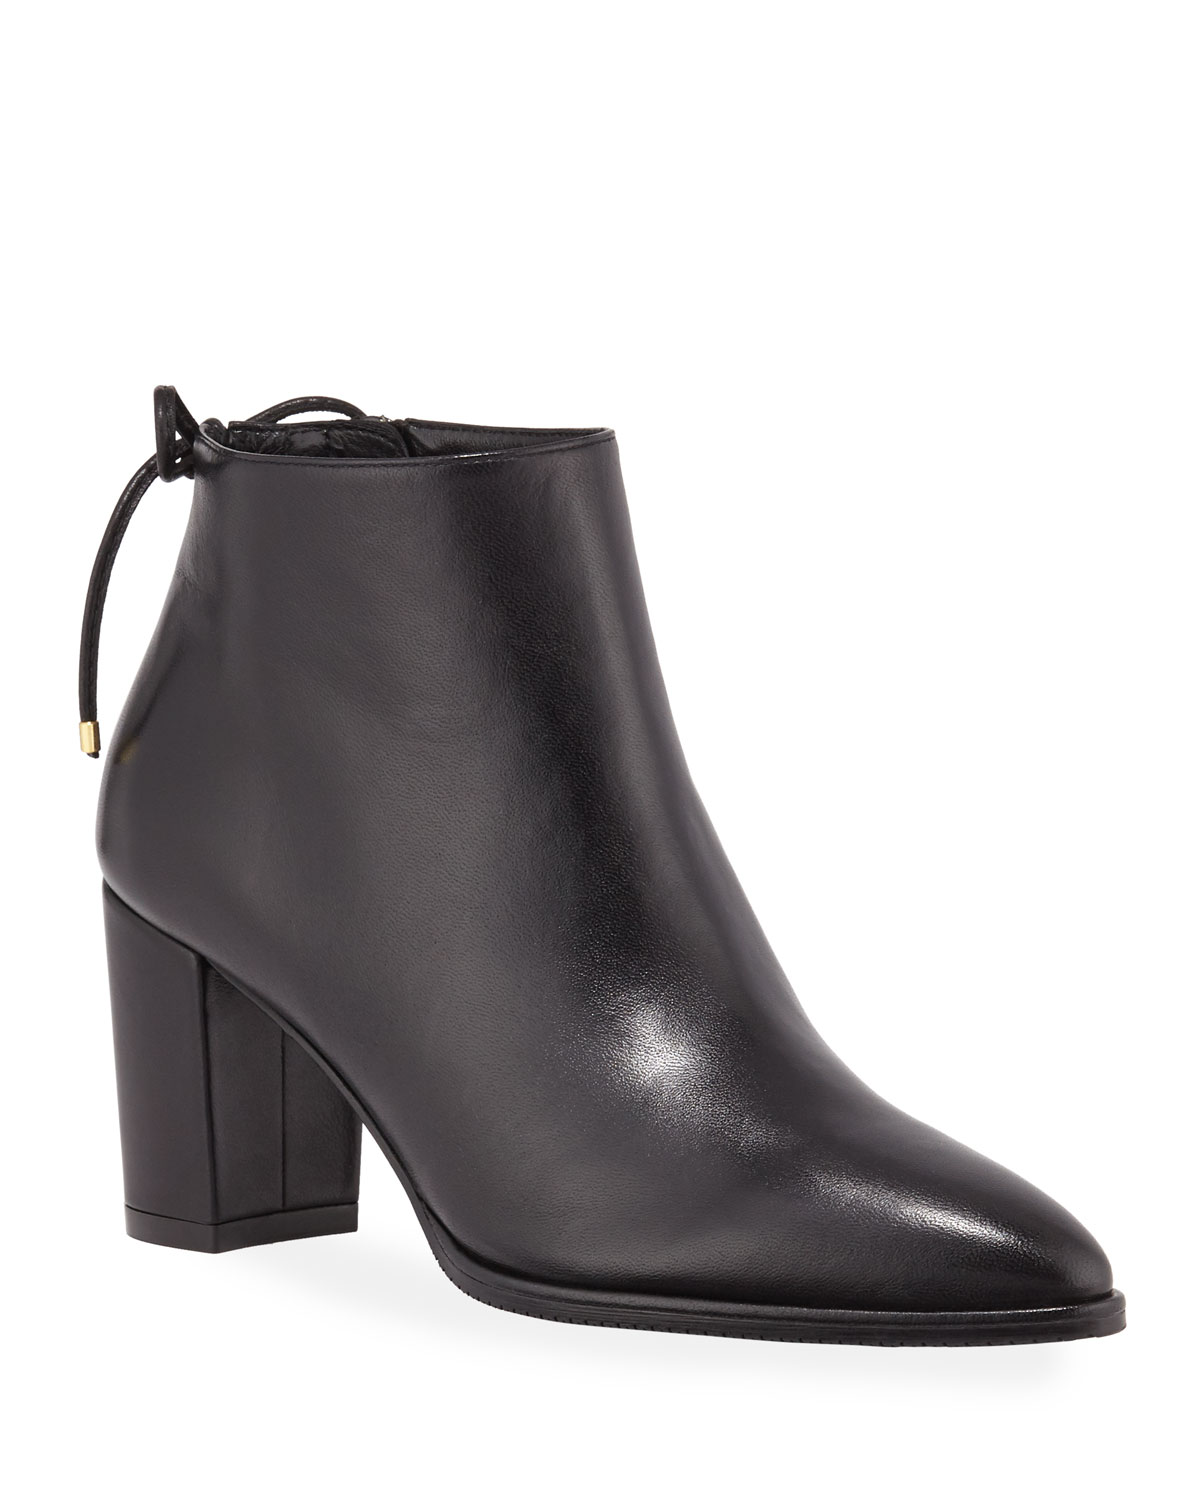 Studded coated leather ankle boots